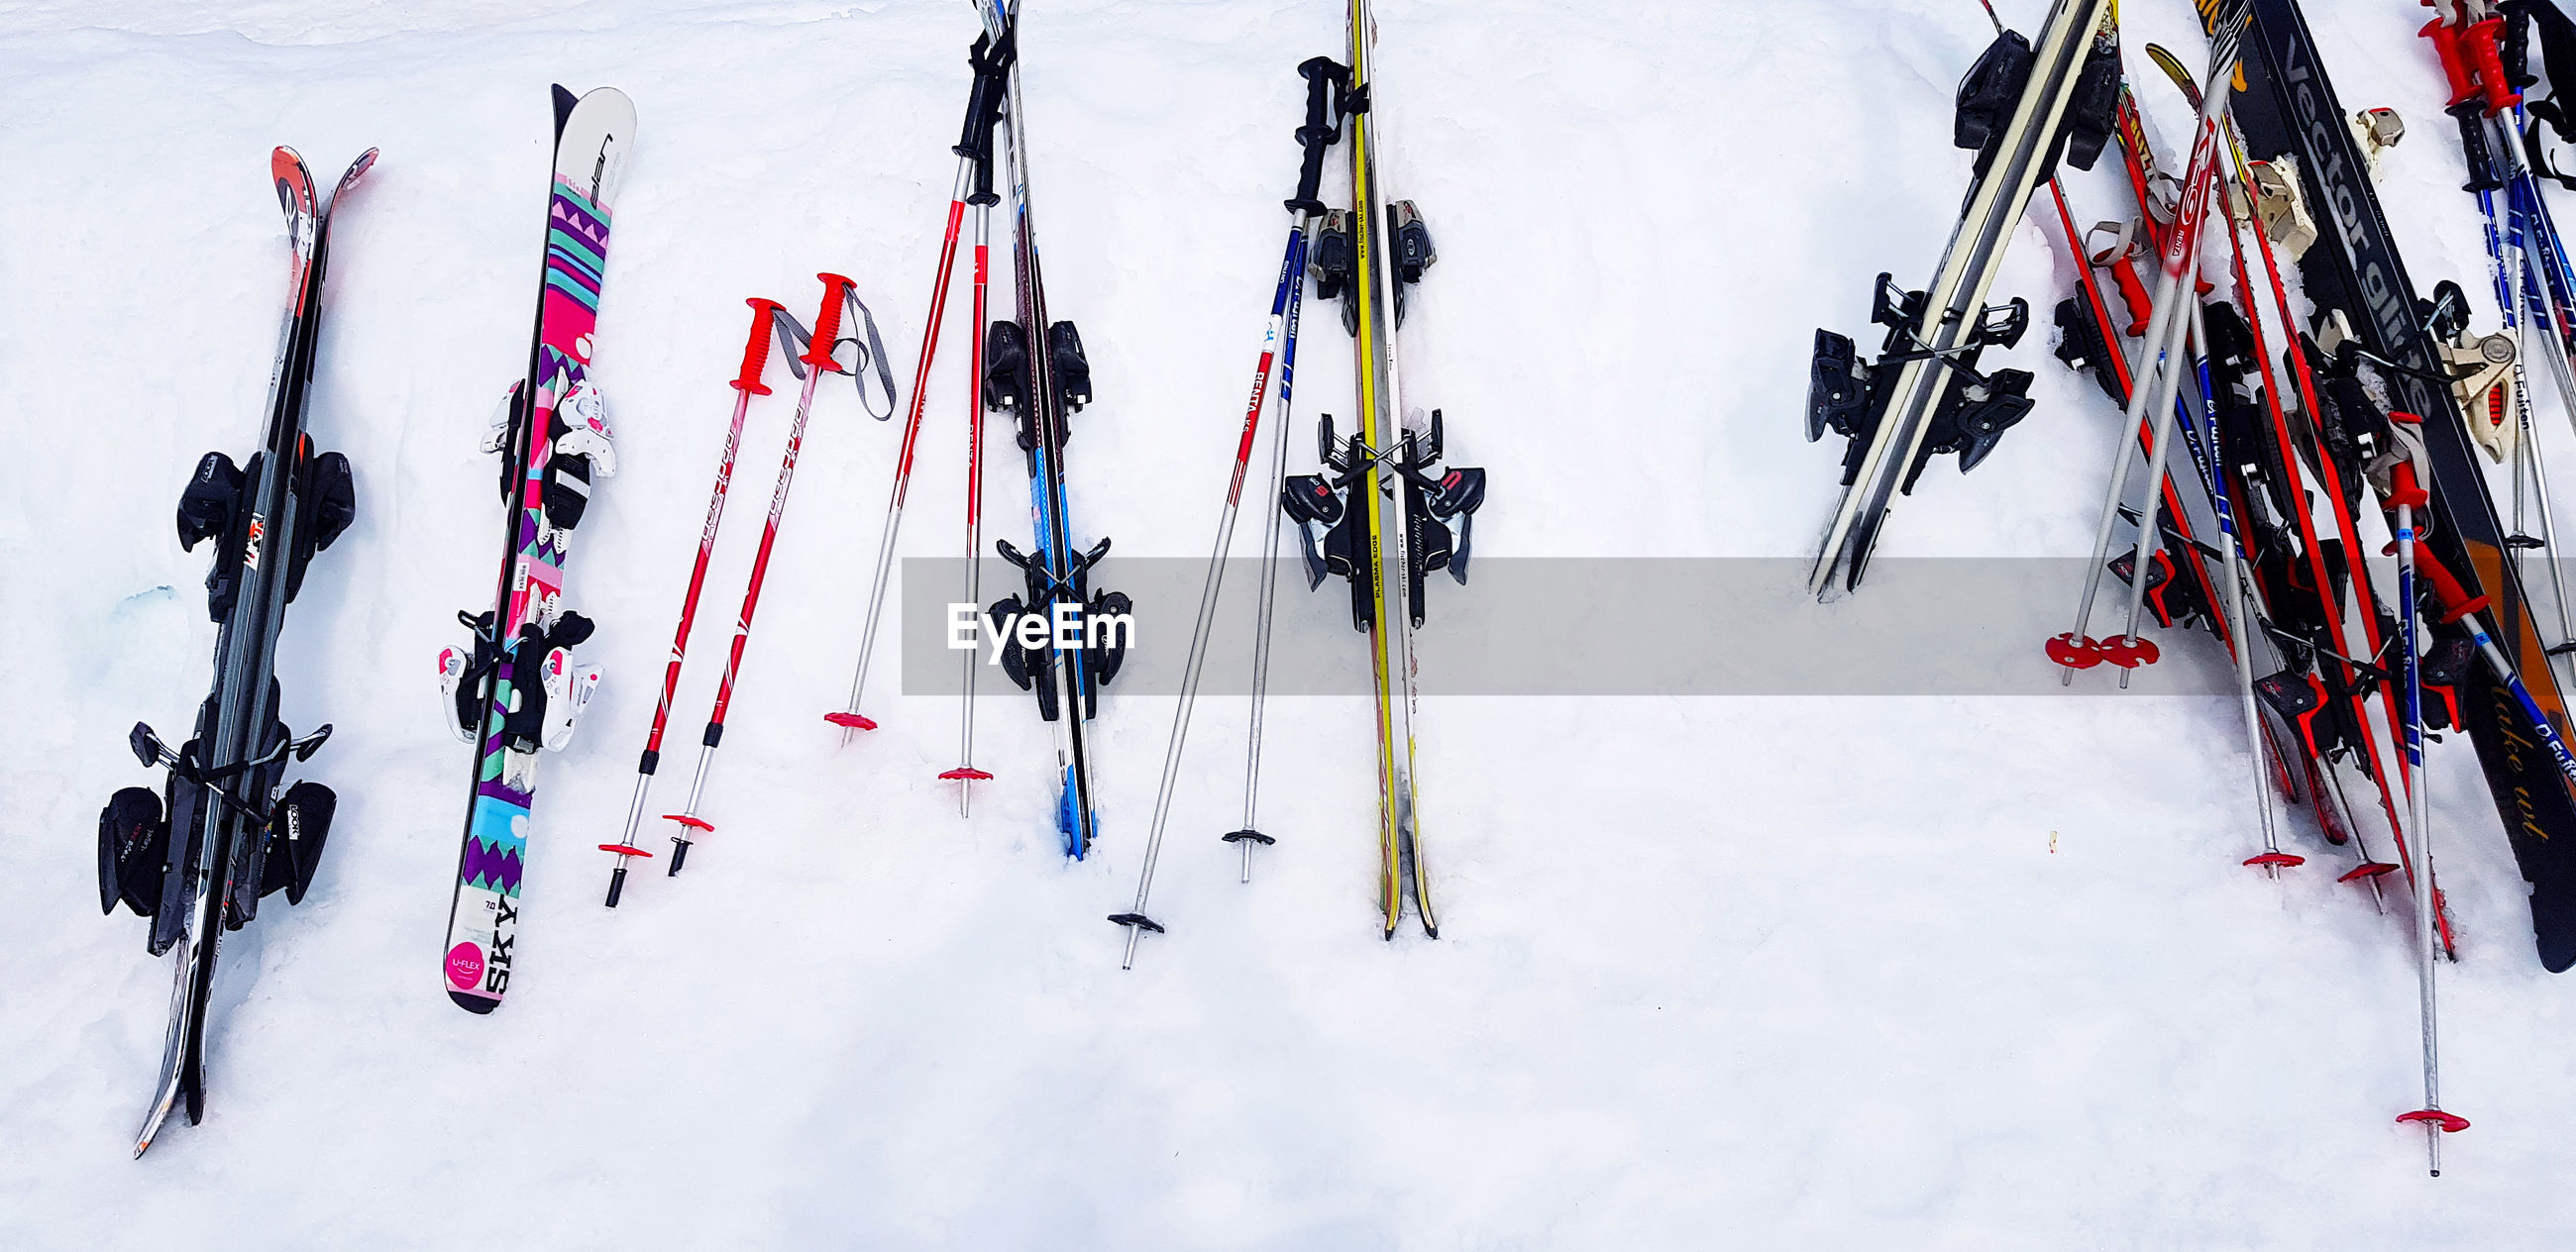 HIGH ANGLE VIEW OF PEOPLE SKIING ON SNOW FIELD